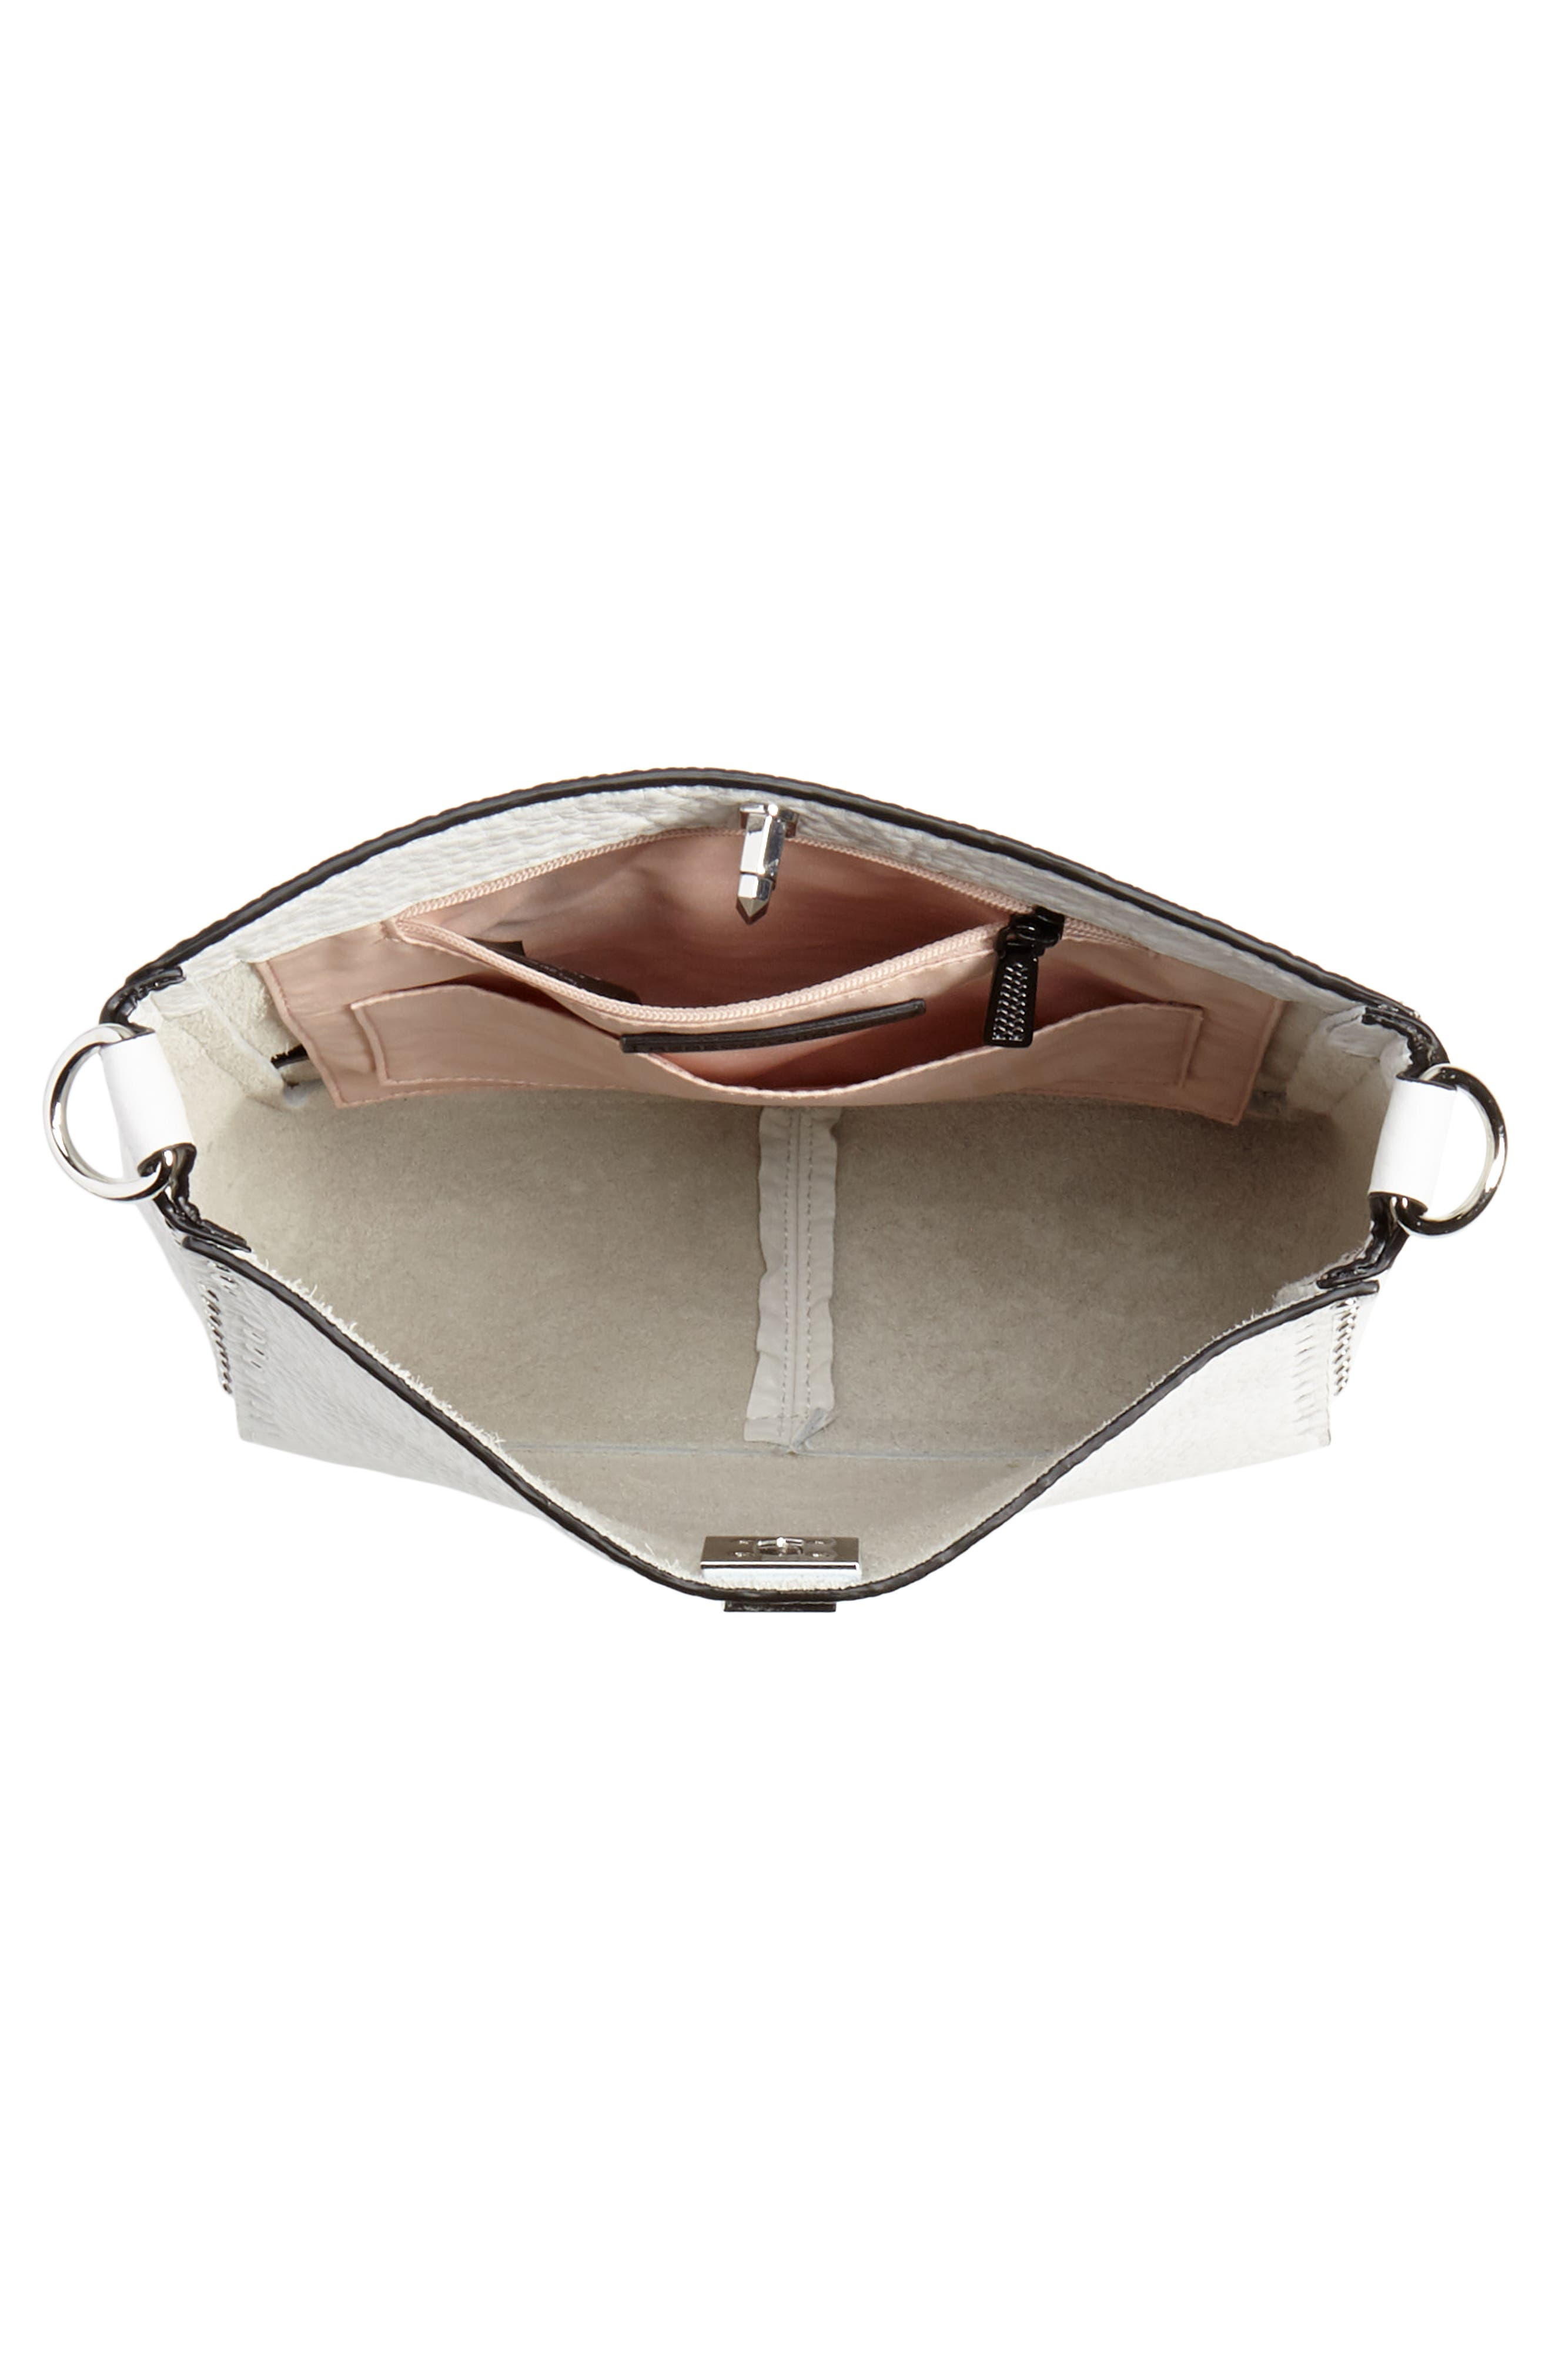 REBECCA MINKOFF, Small Studded Leather Feed Bag, Alternate thumbnail 6, color, OPTIC WHITE